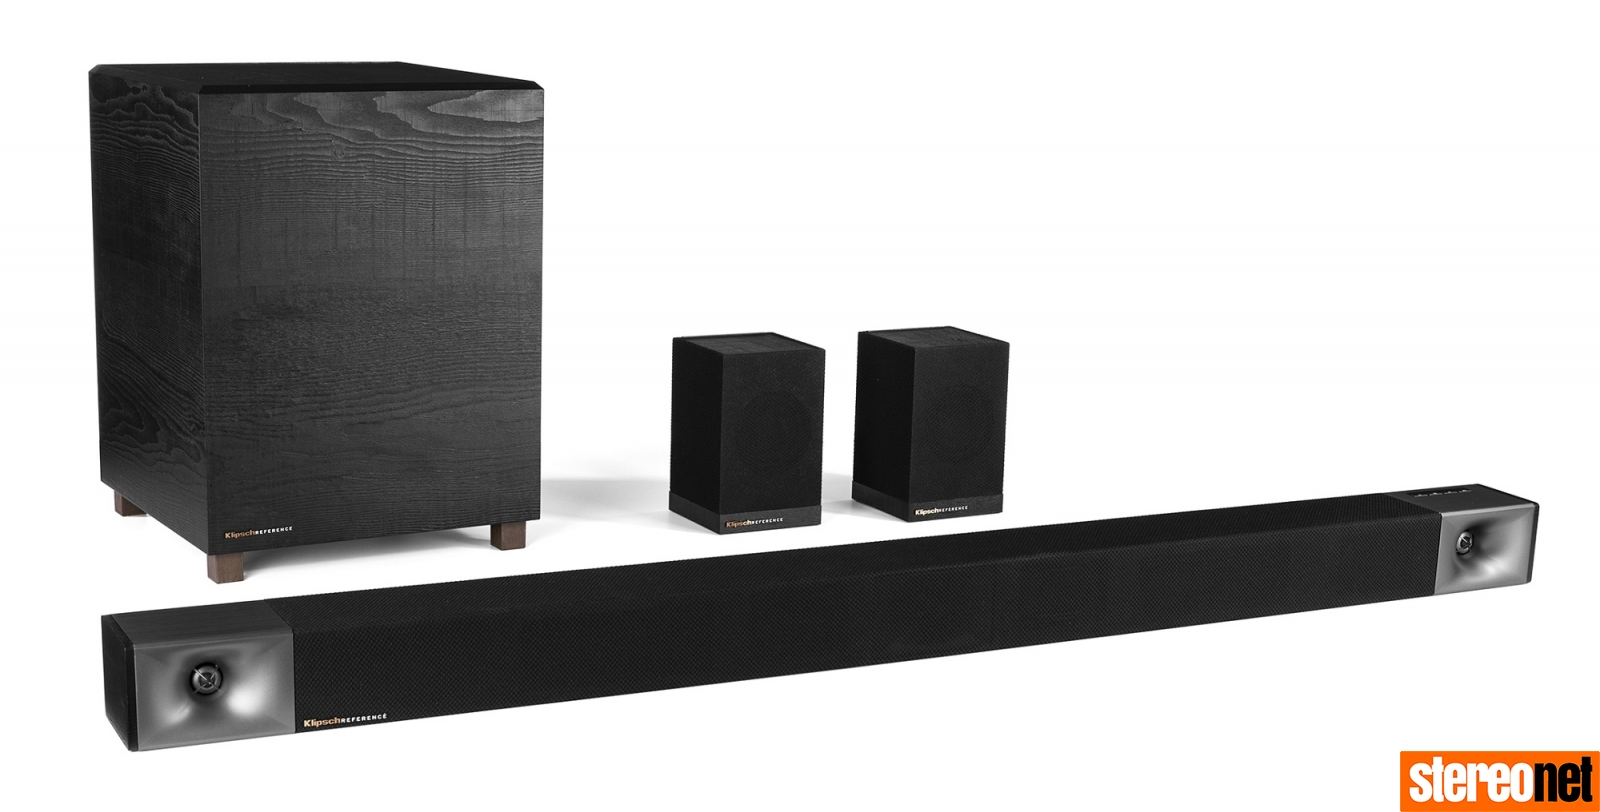 Klipsch BAR 48 5.1 Surround